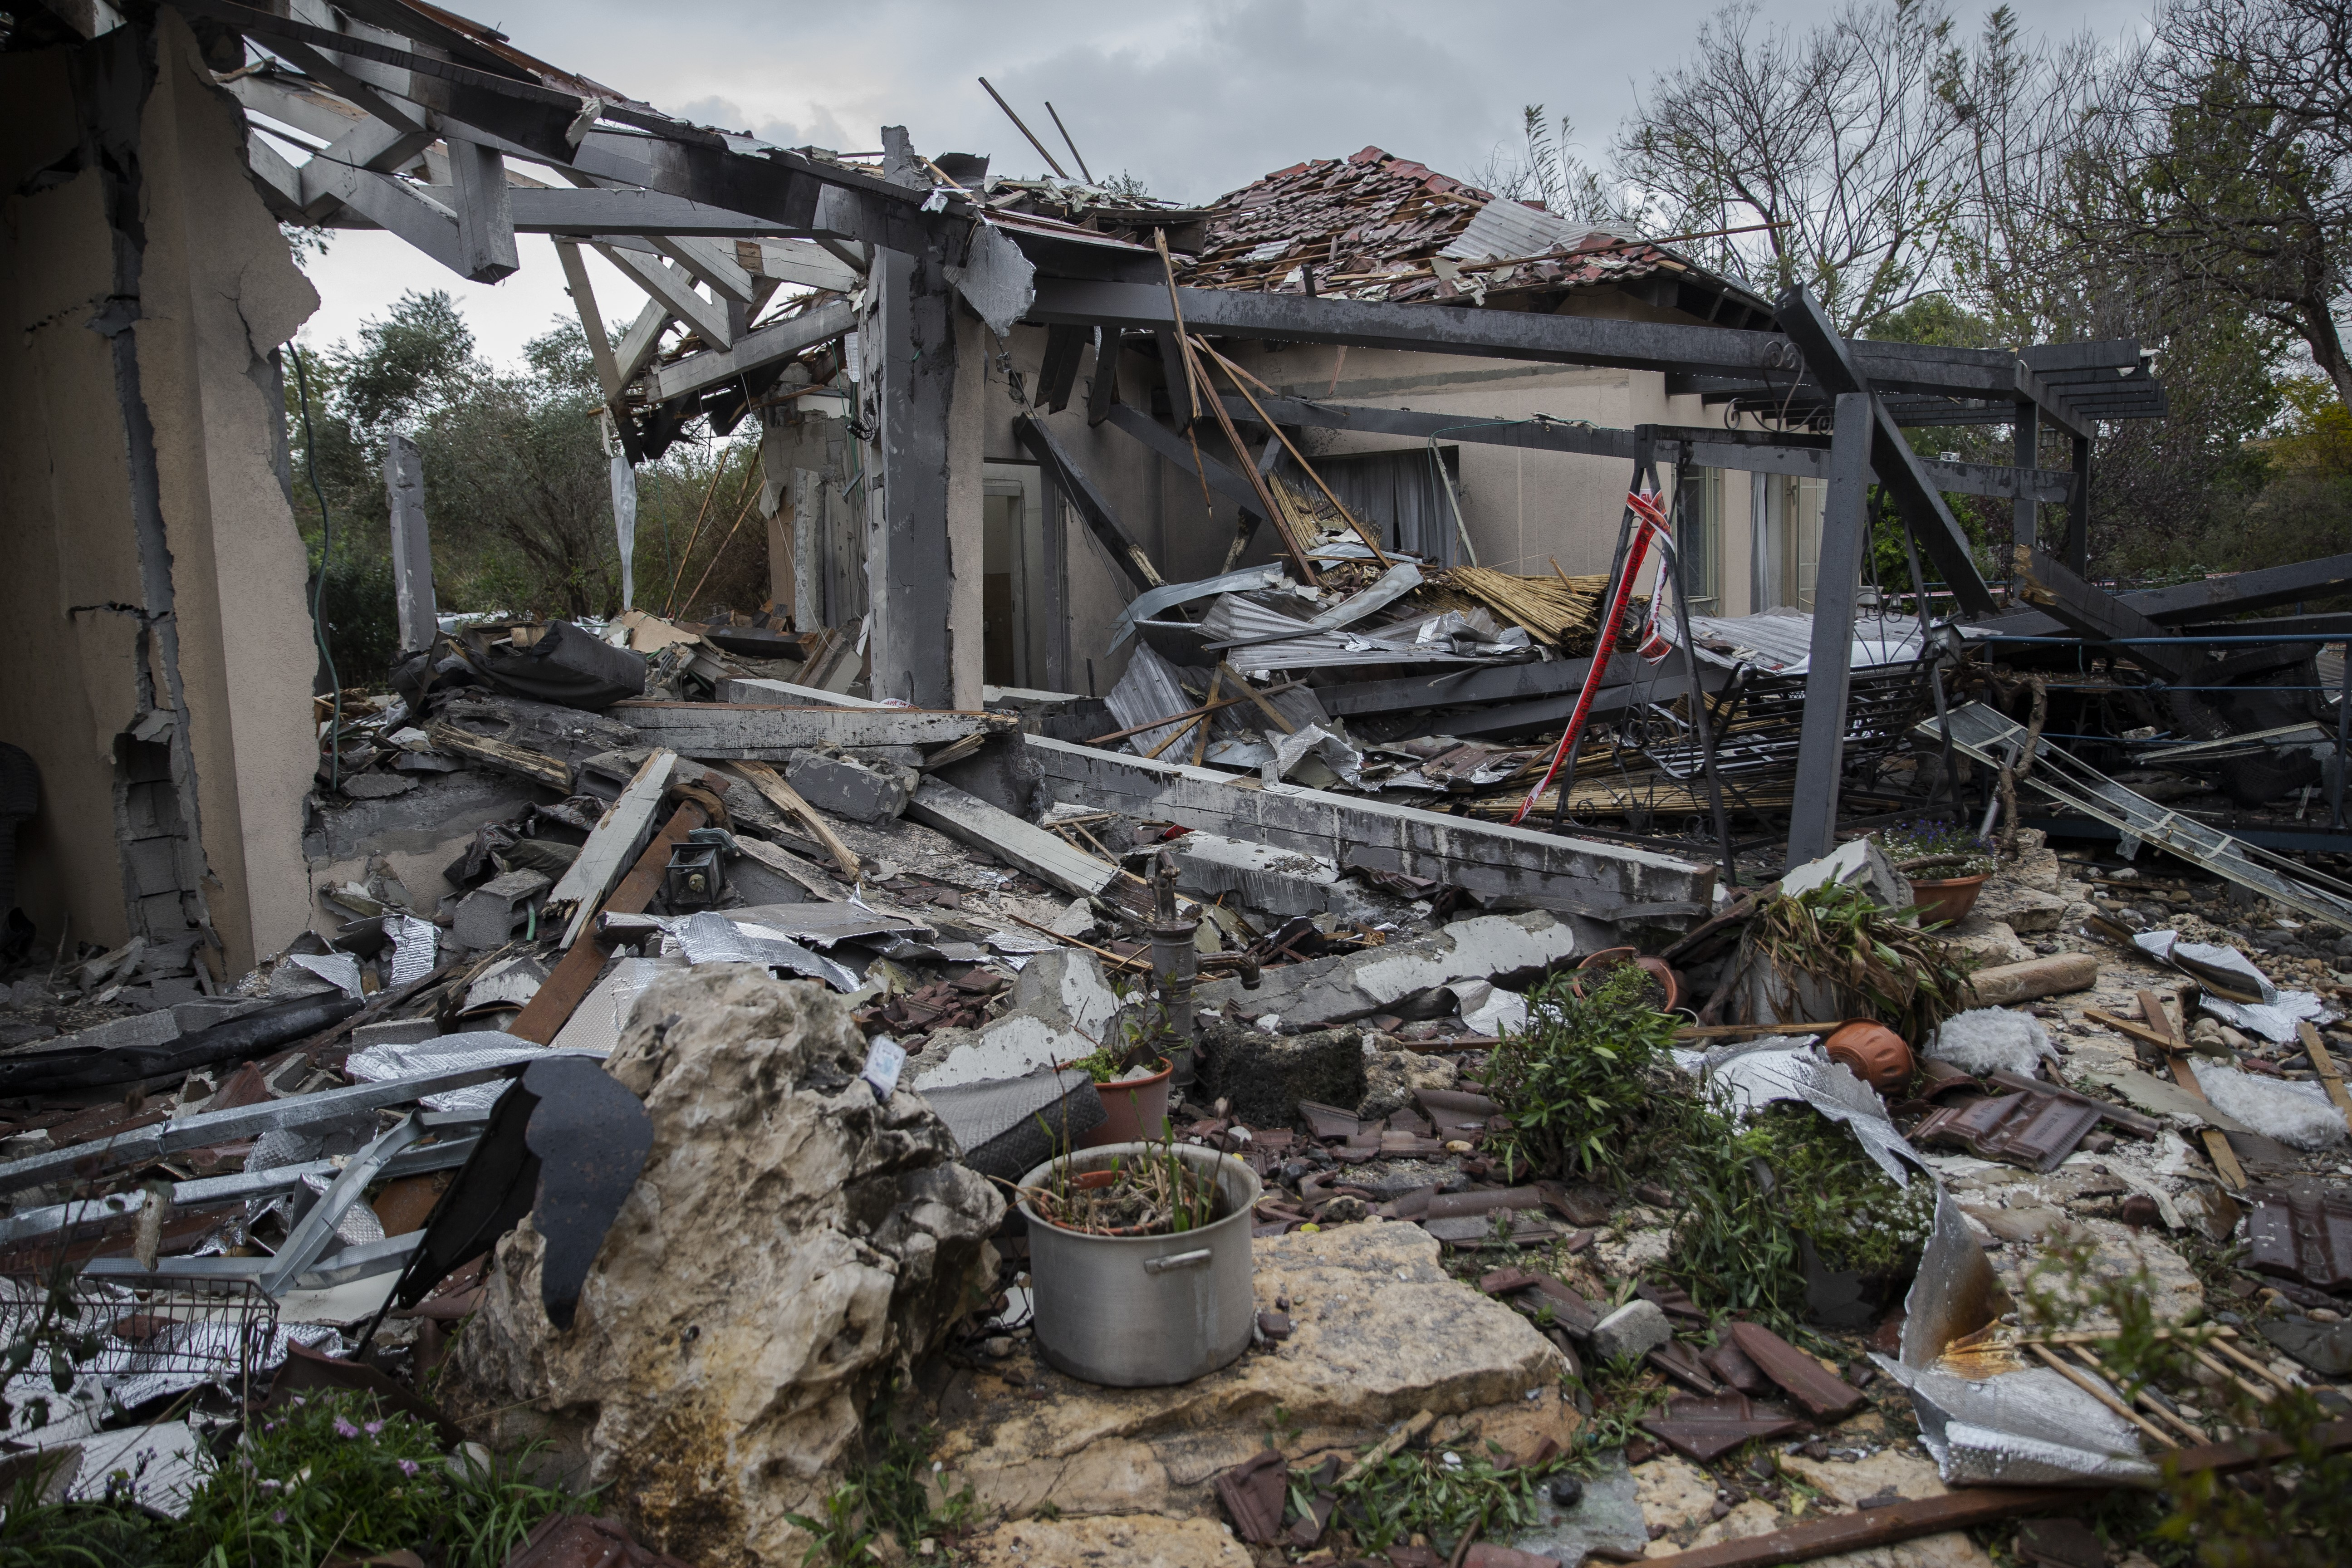 Damaged houses are seen after a rocket hit the village of Mishmeret on March 25, 2019. Seven Israelis were reportedly injured in rocket fire from the Gaza Strip.